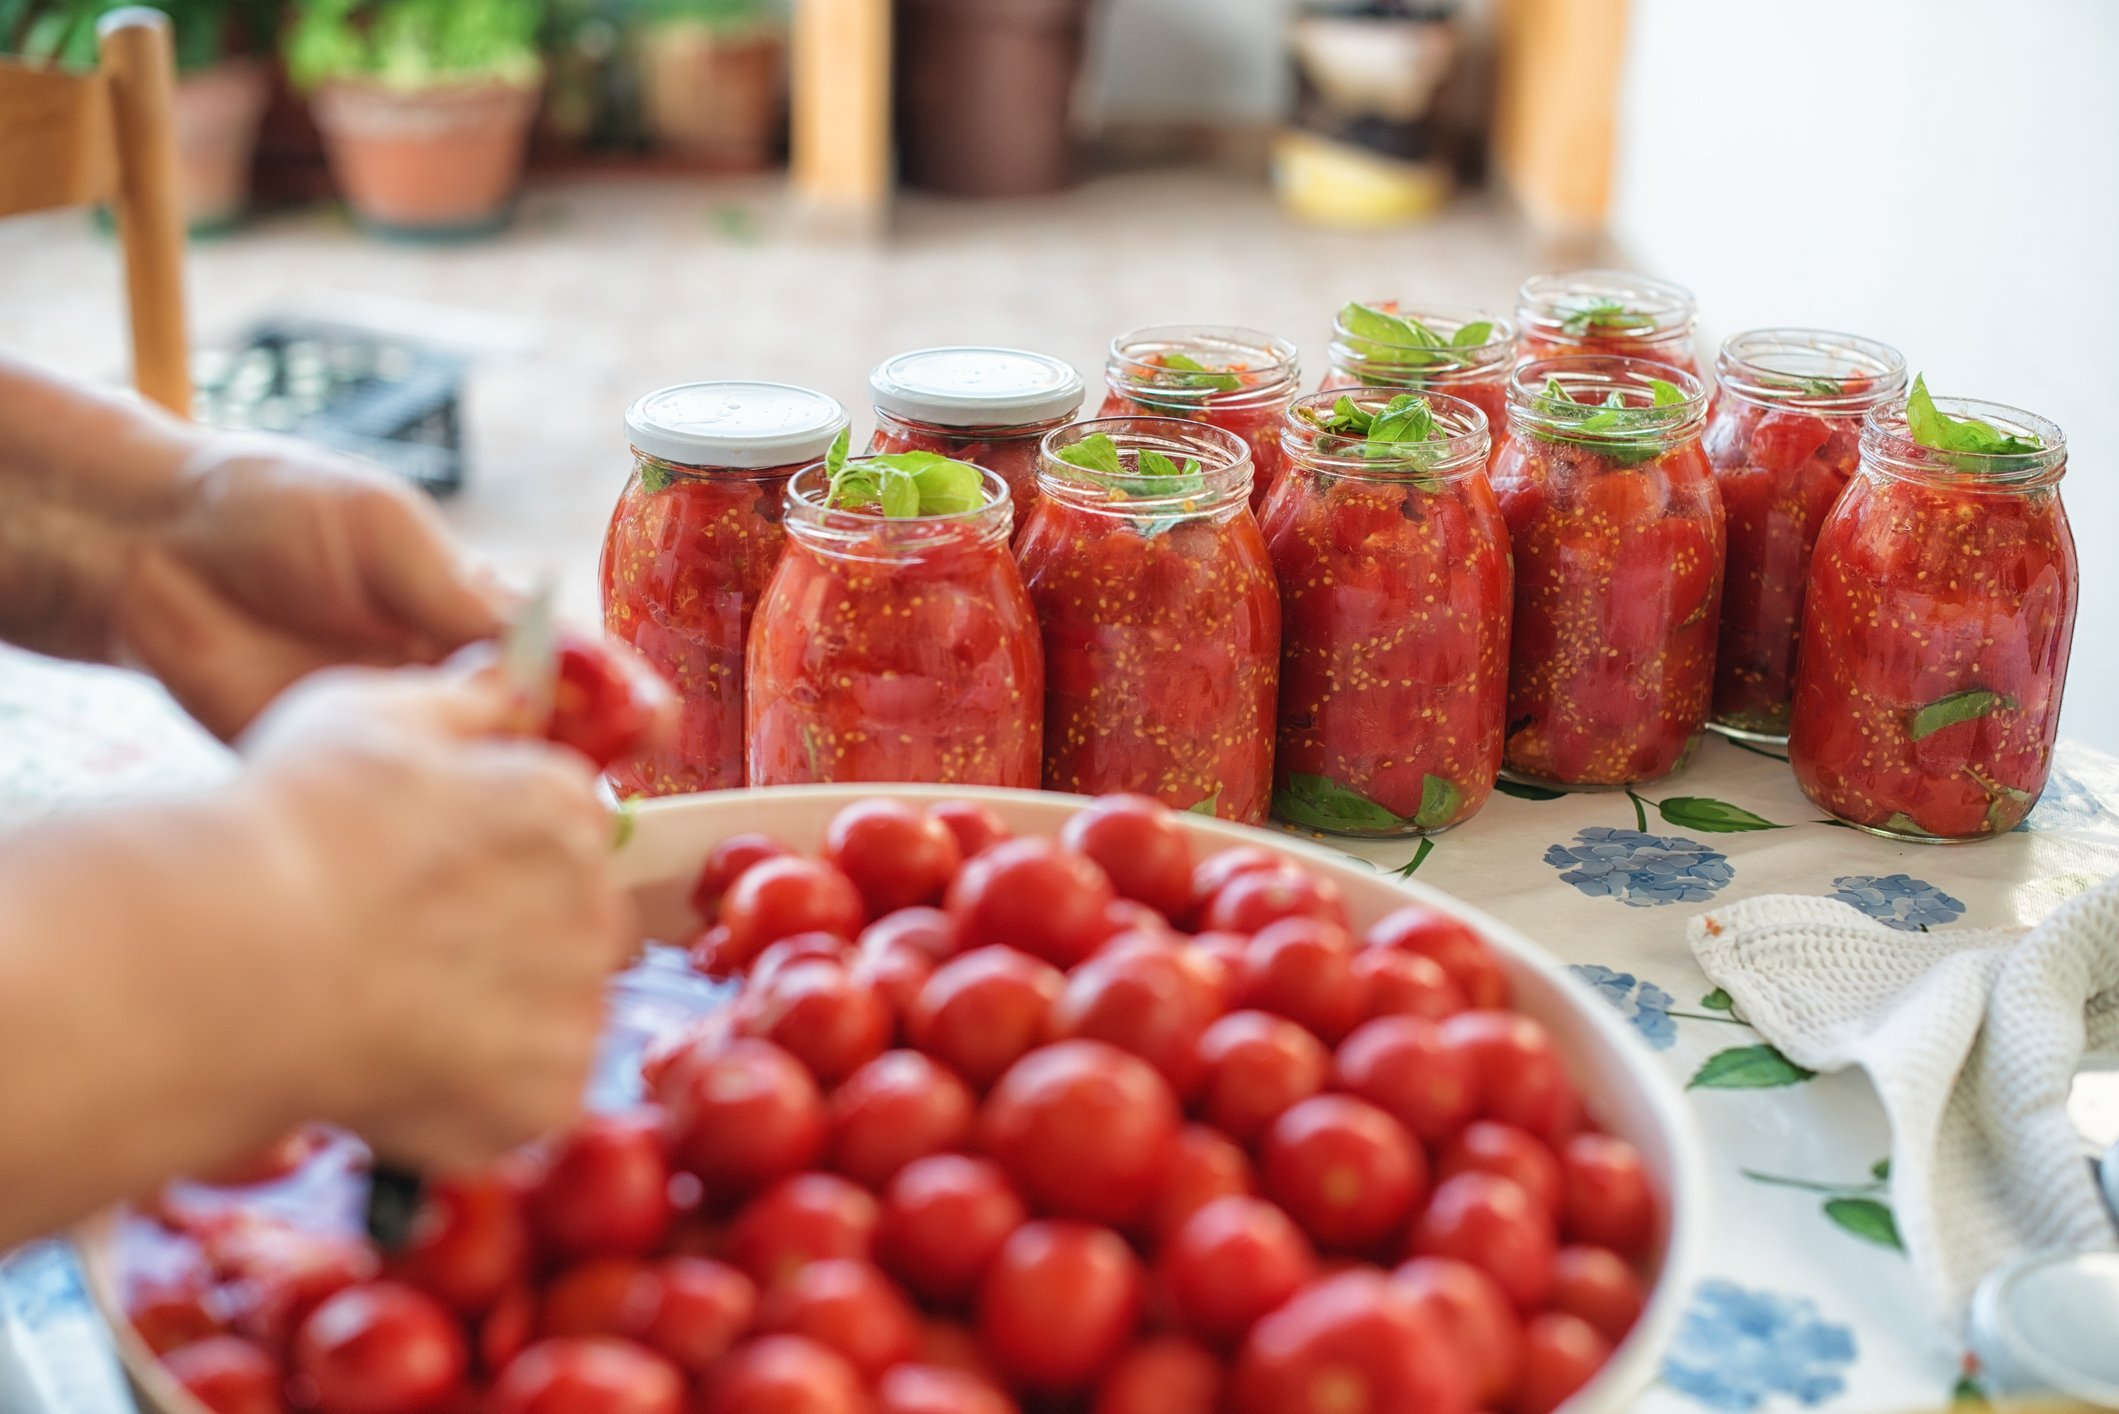 Jarring cooked tomatoes is one of the best ways to preserve summer tomatoes. (iStock Photo)